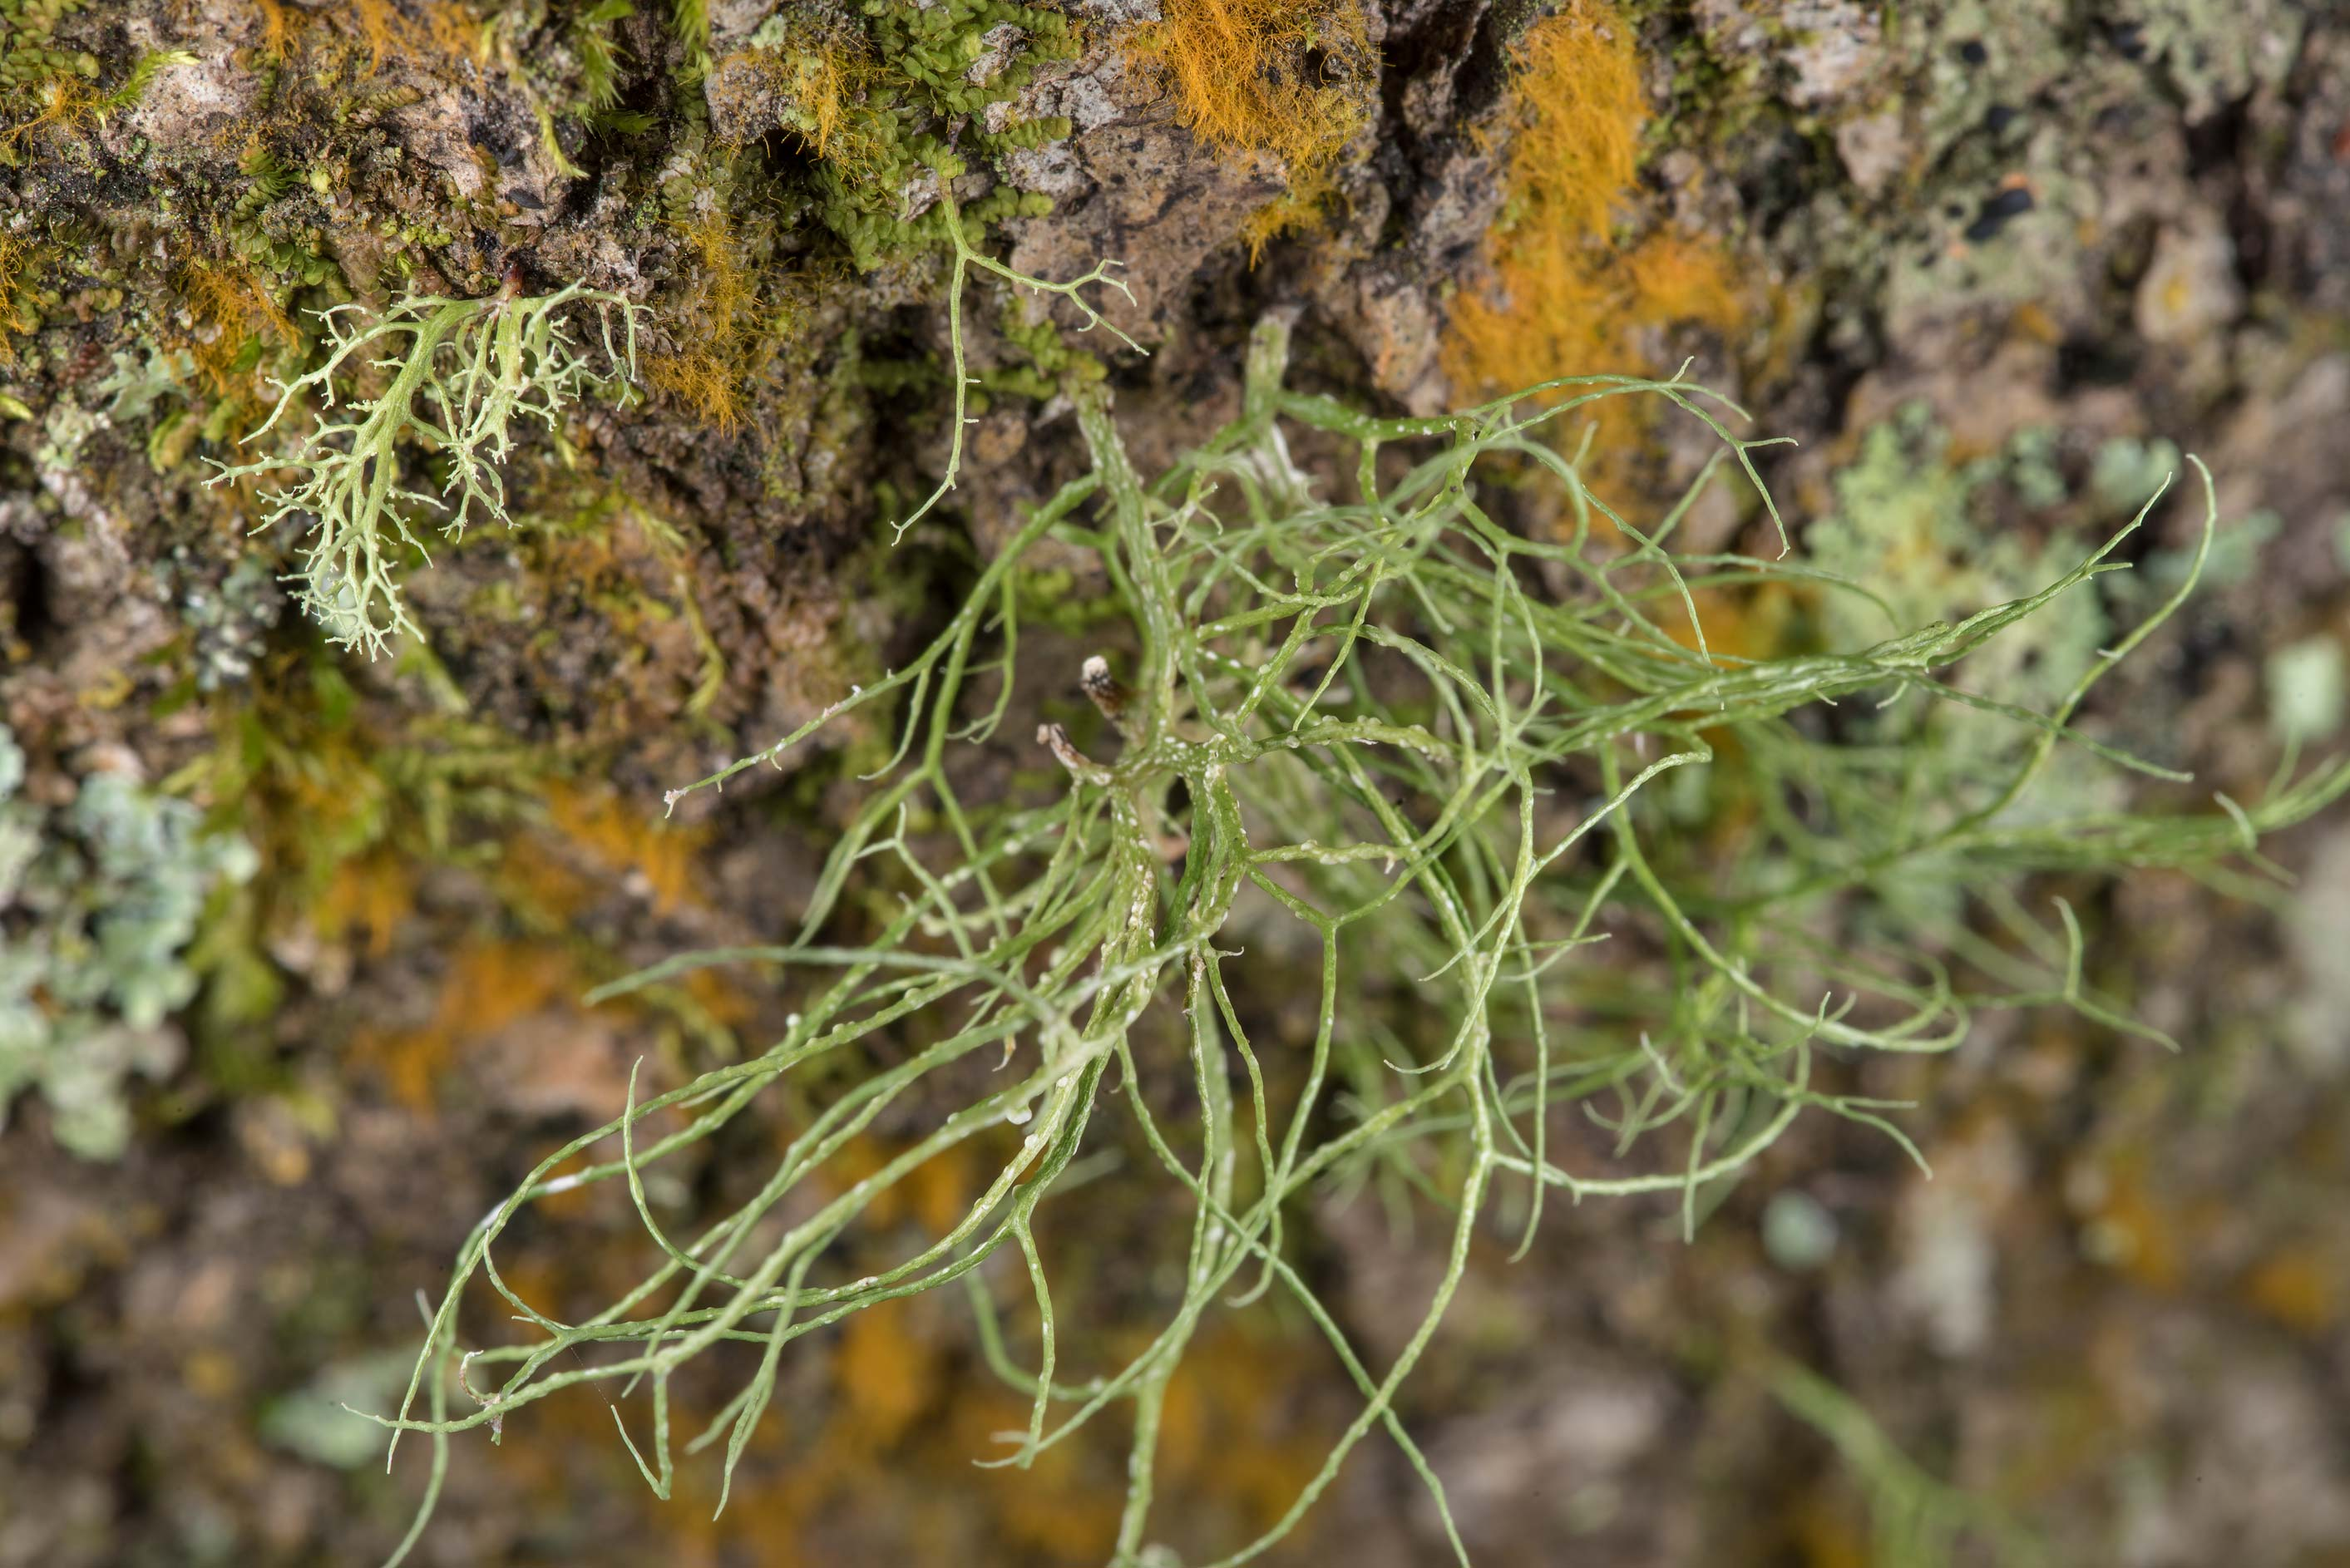 Ramalina peruviana lichen on a tree in a forest...National Forest near Huntsville. Texas